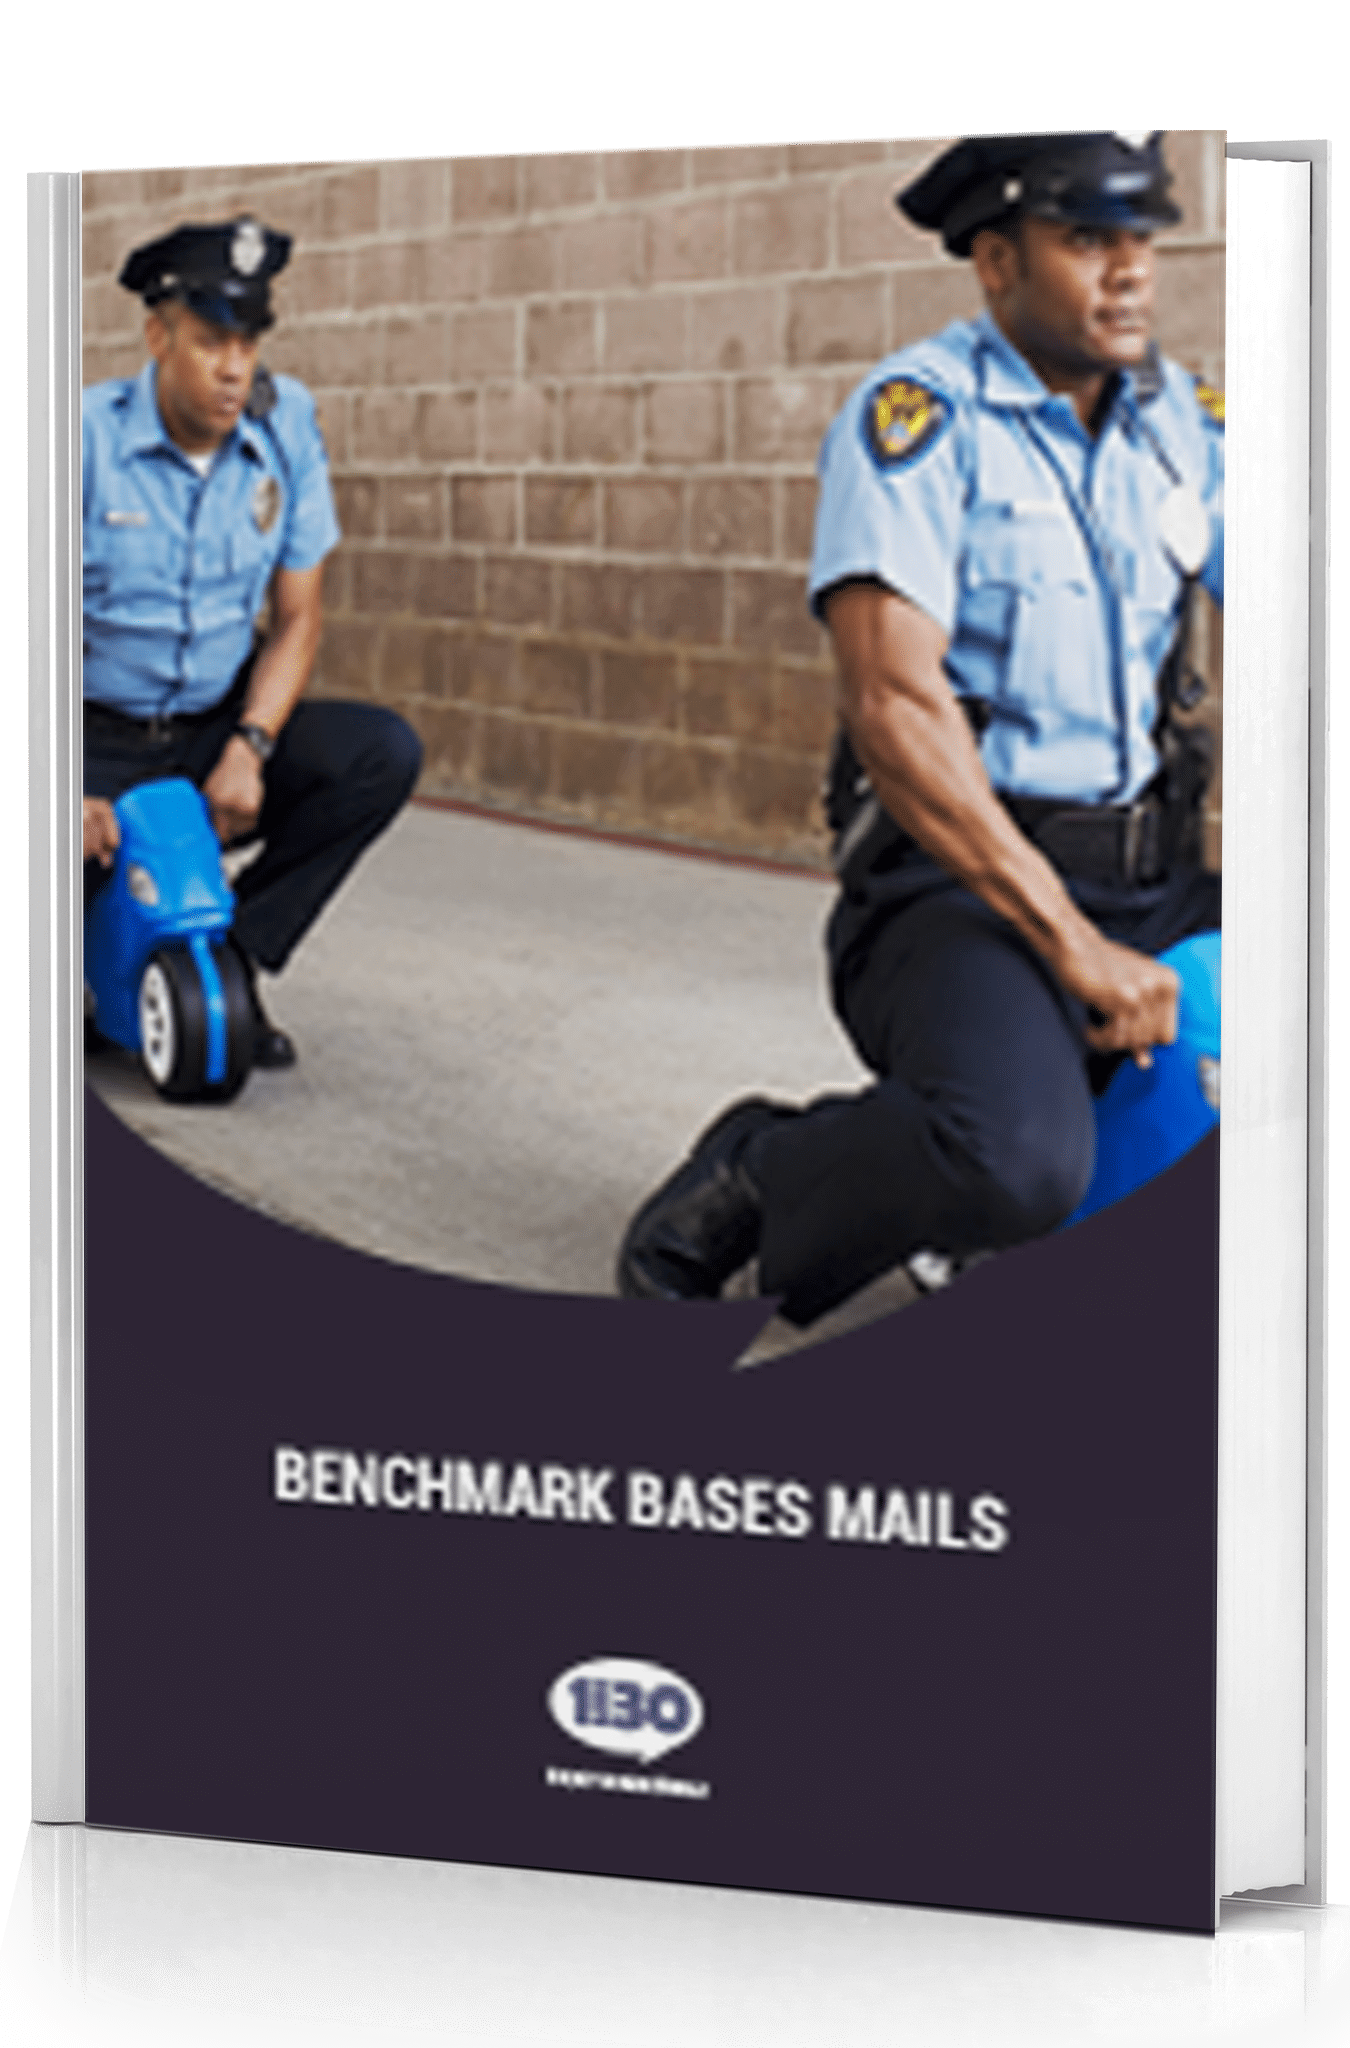 benchmark bases mail